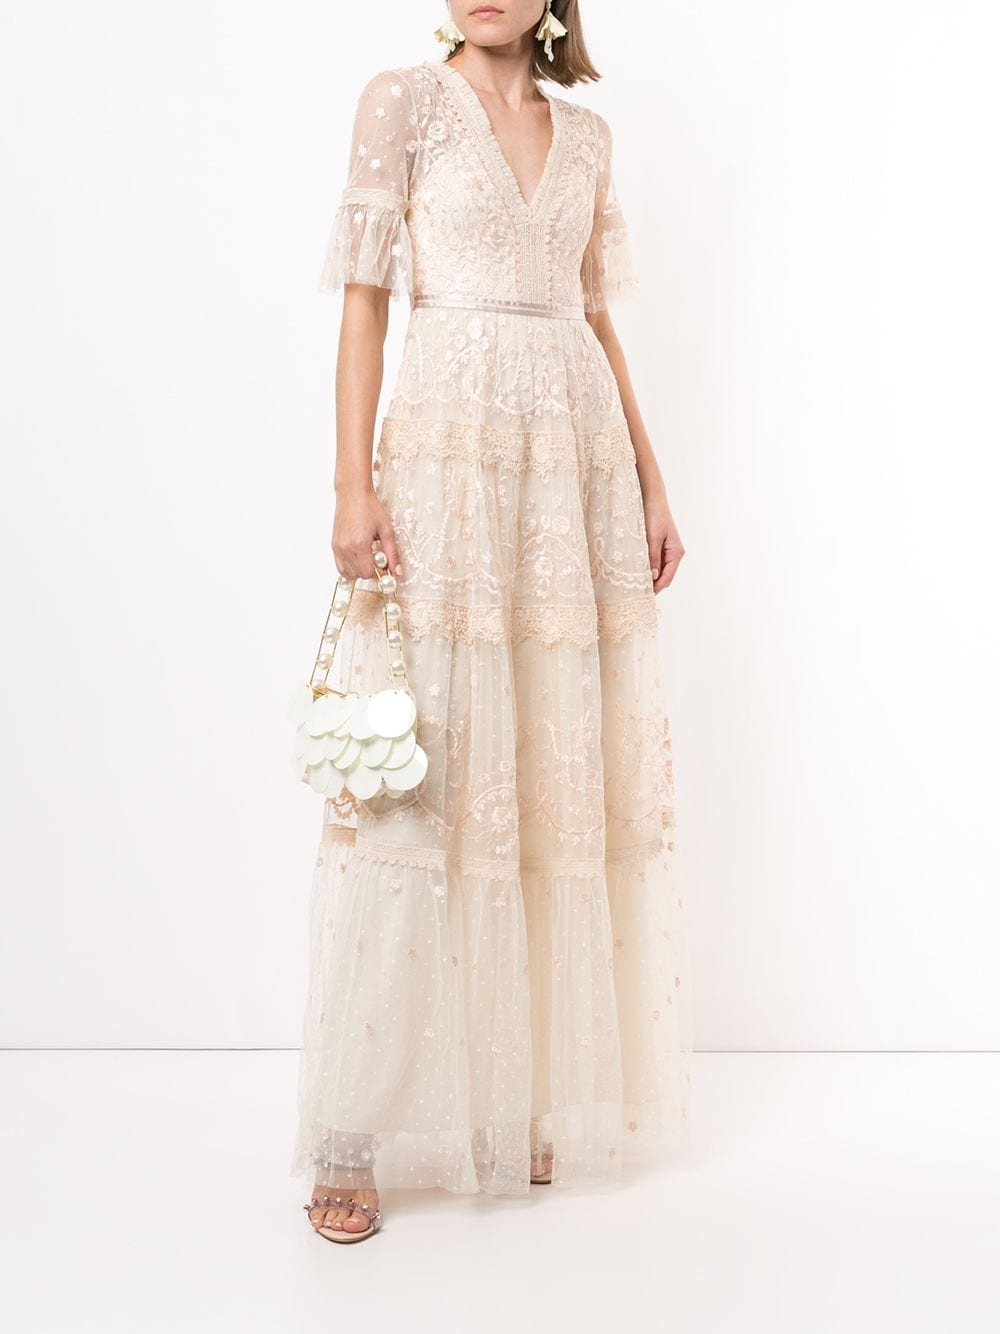 NEEDLE & THREAD Midsummer Floral Lace Gown